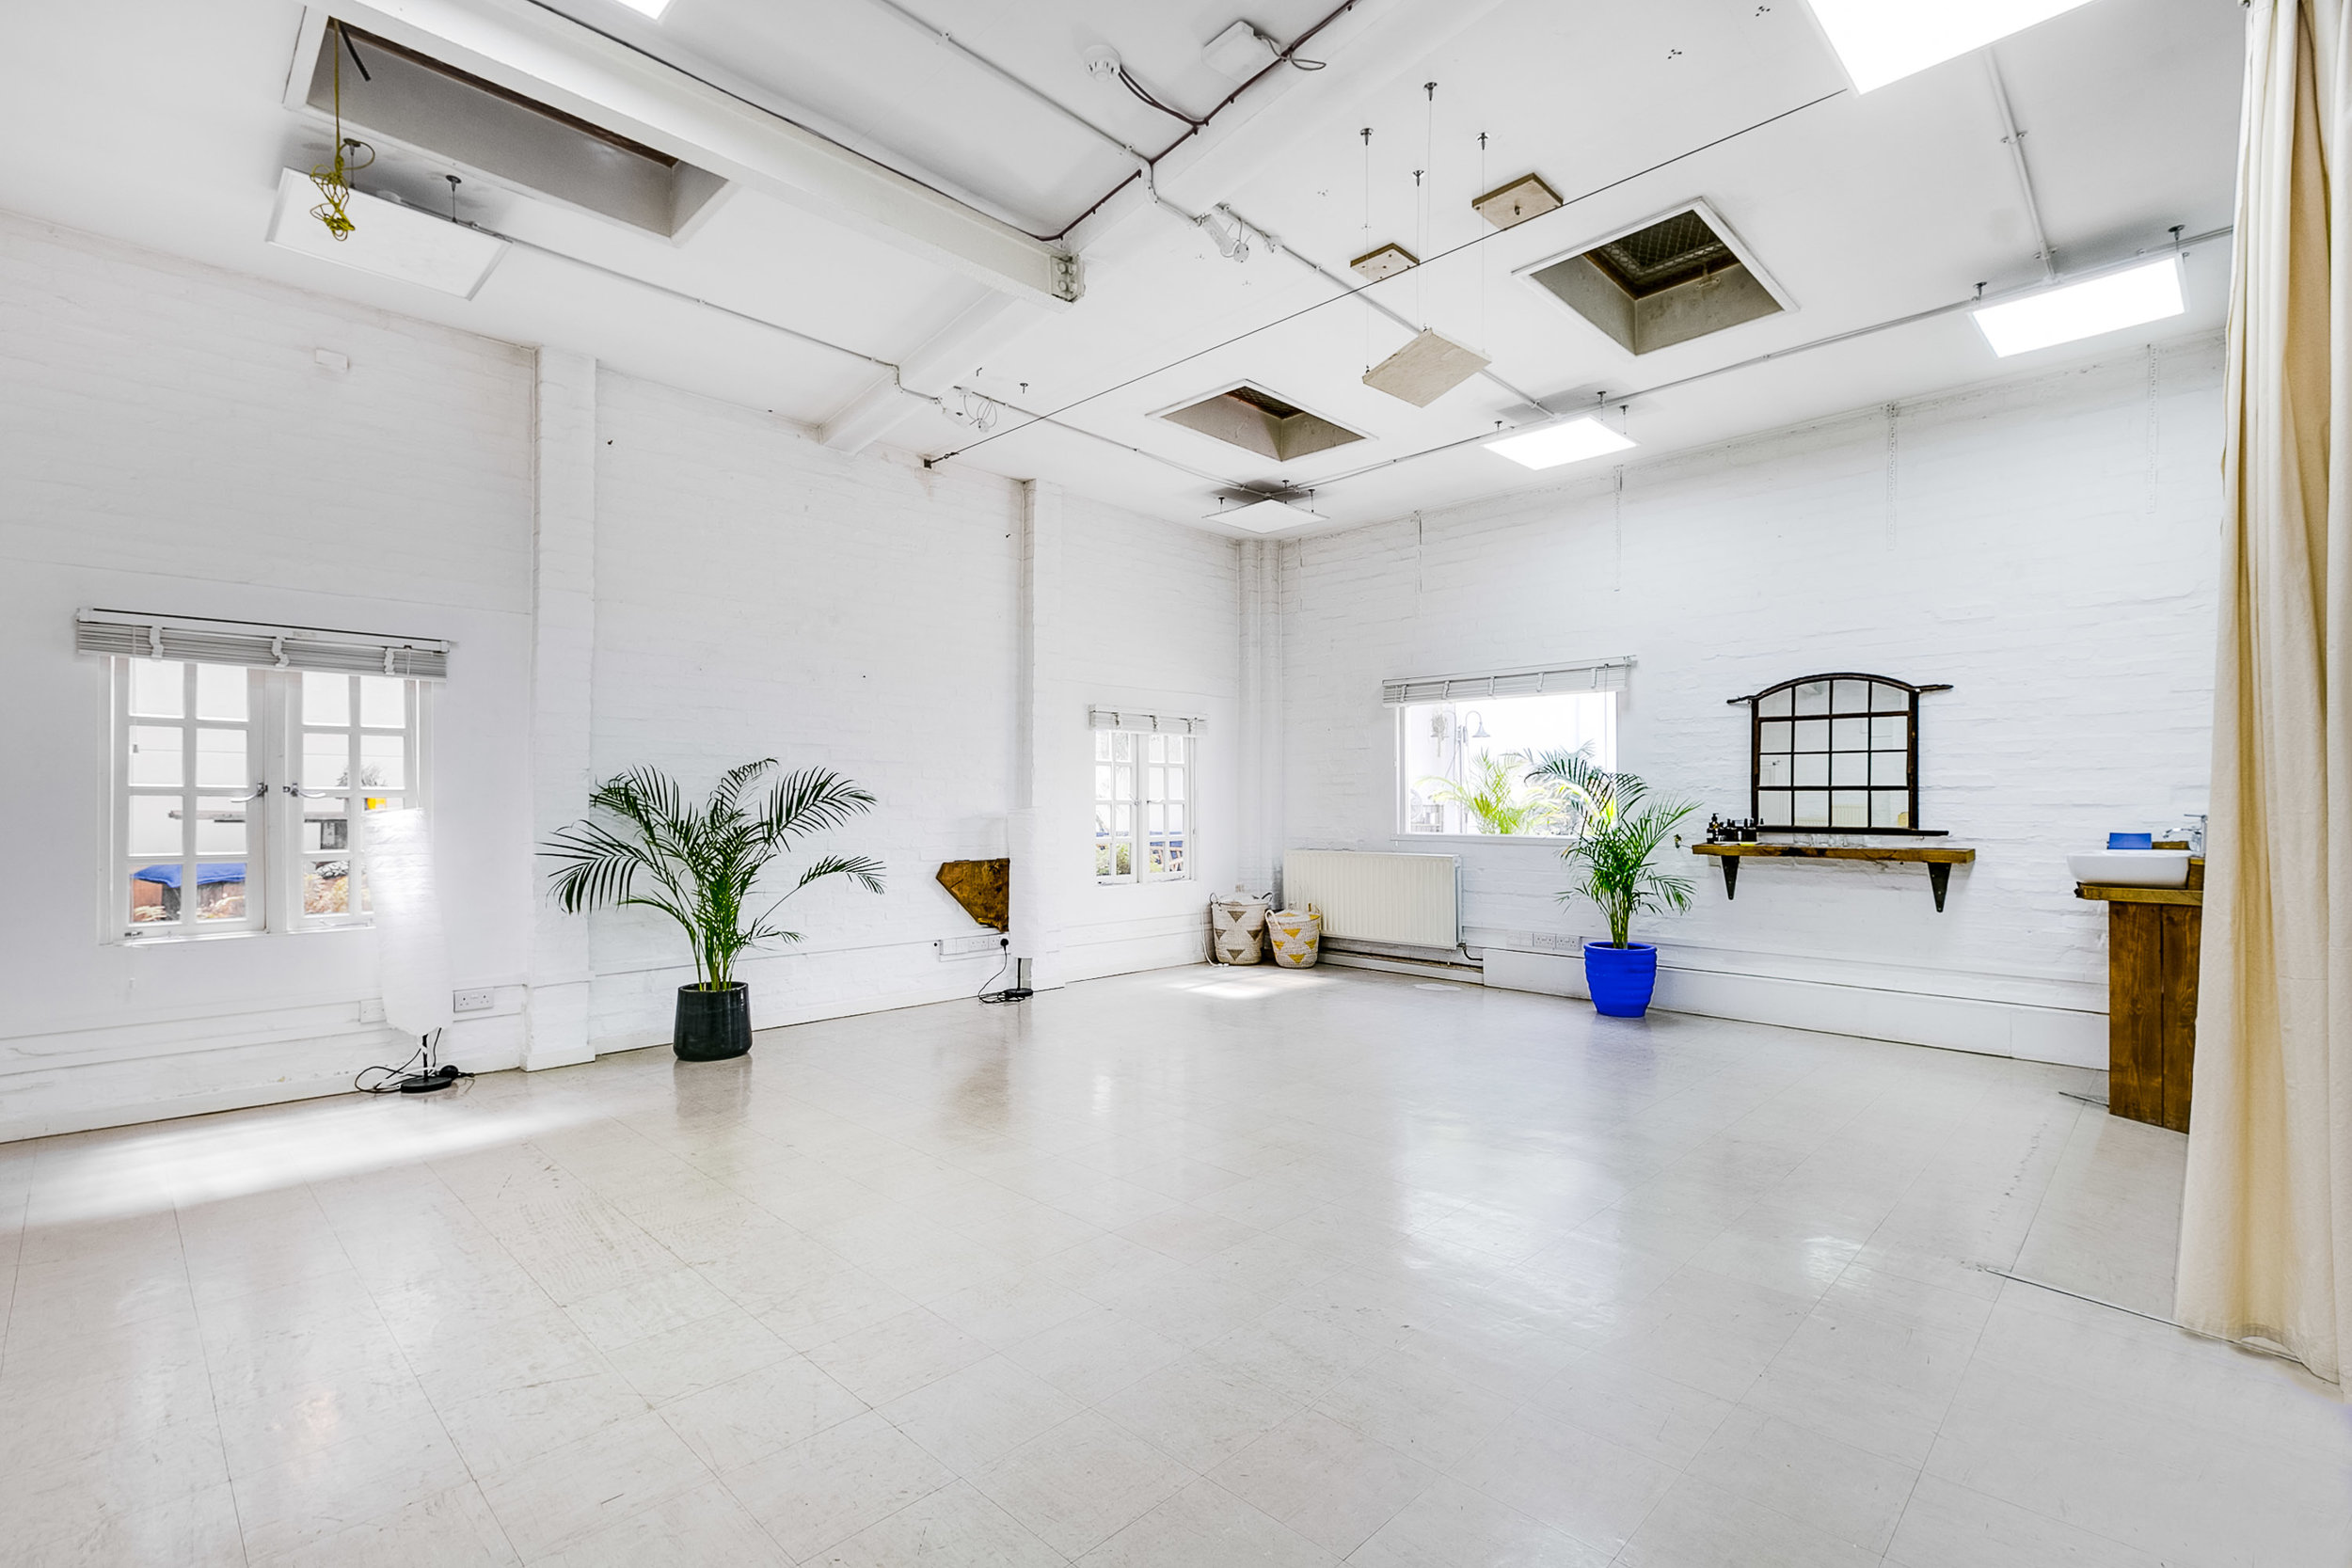 Blank Canvas Space - Our versatile space is ideal for any event, training session, seminar or workshop.